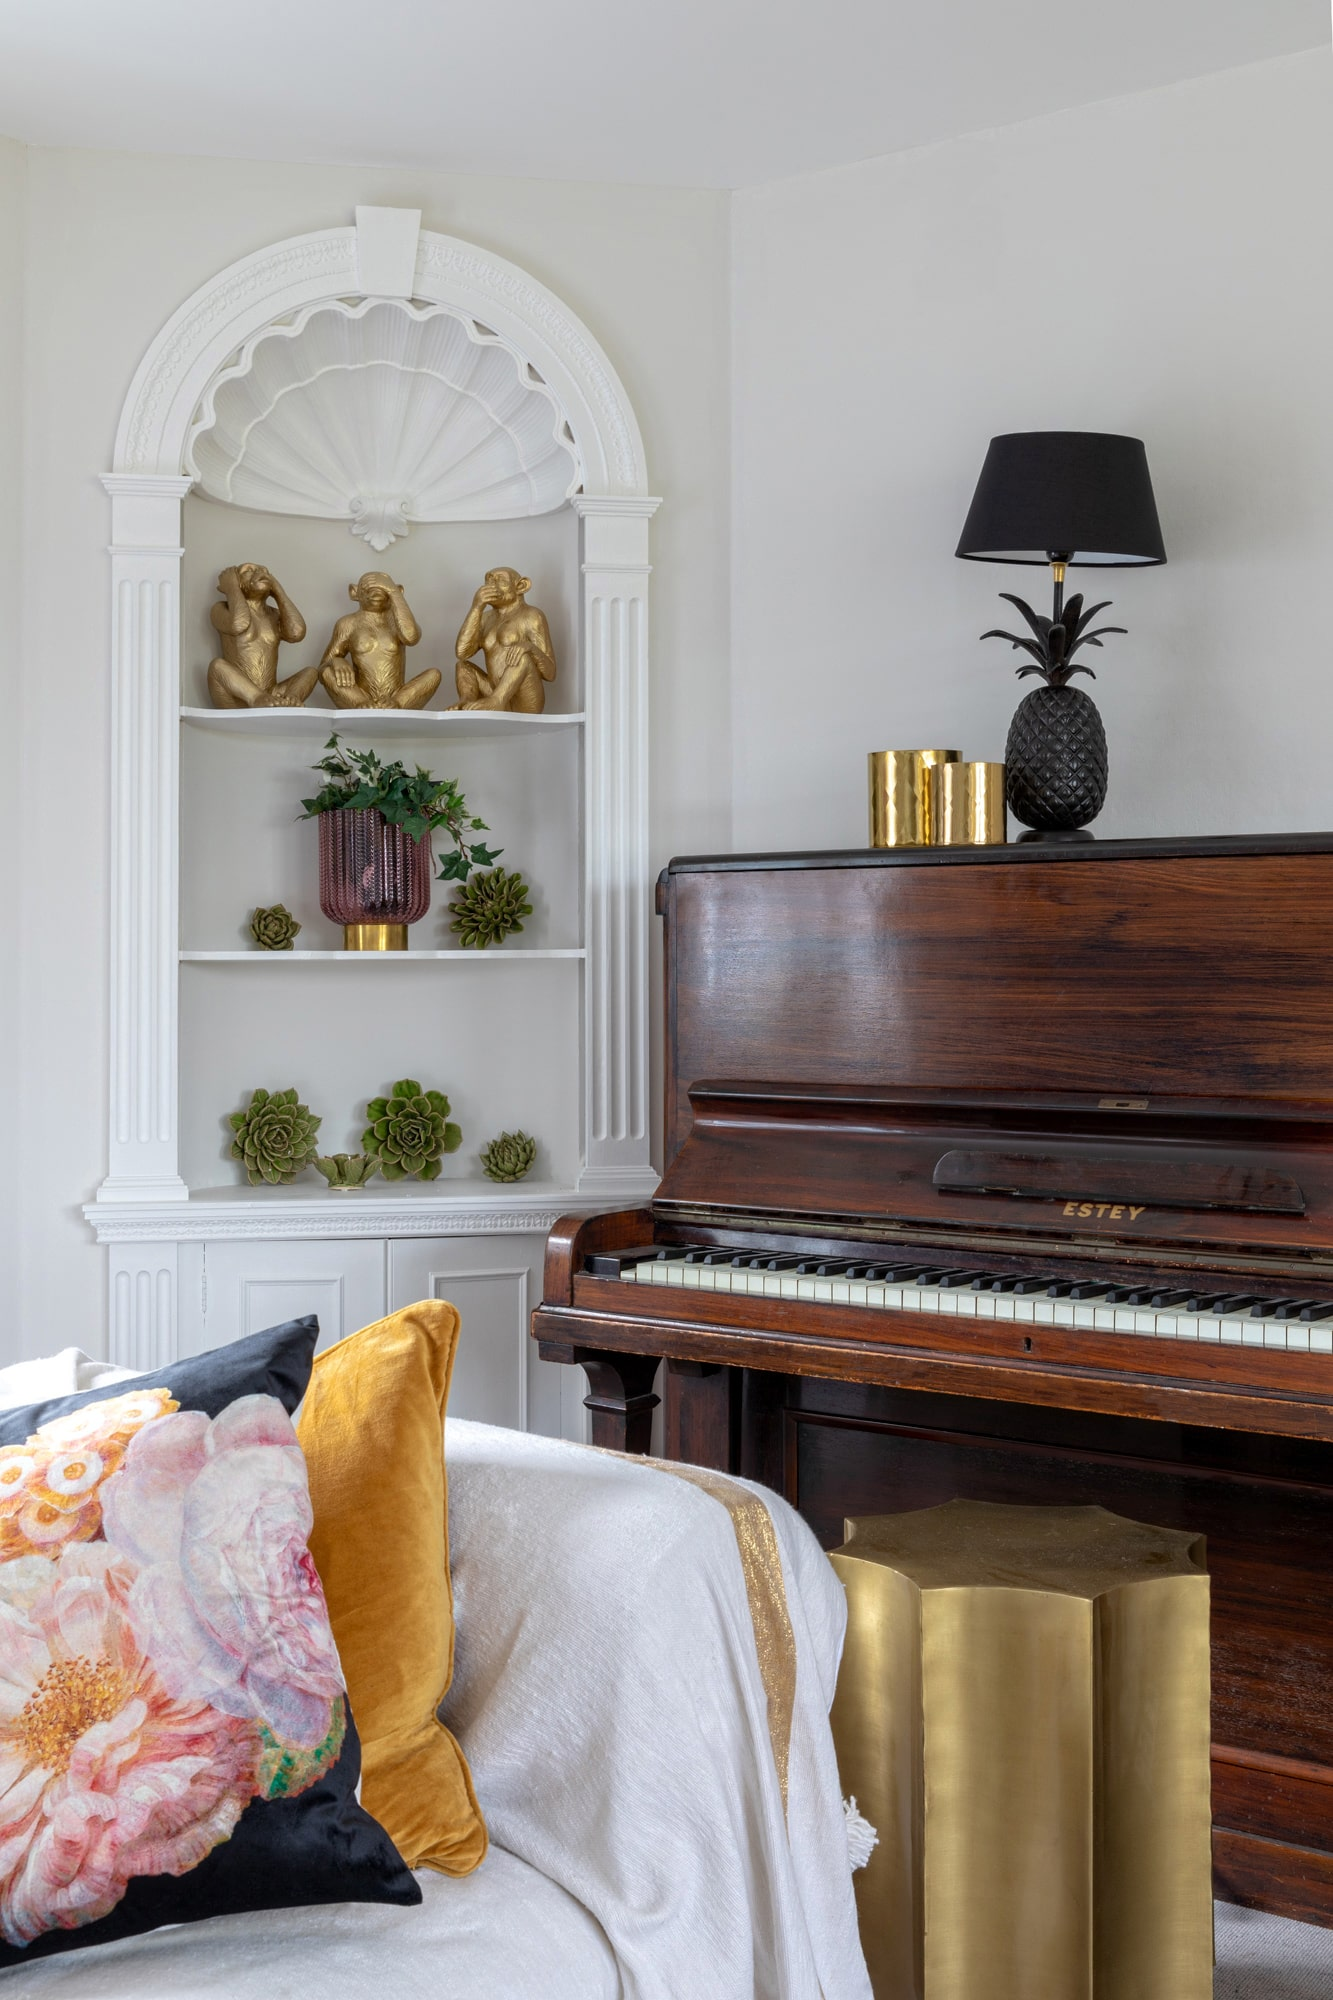 interior detail photo: sitting room in a farm house; piano; sofa covered with white throw with decorative cushions; shelves with accessories